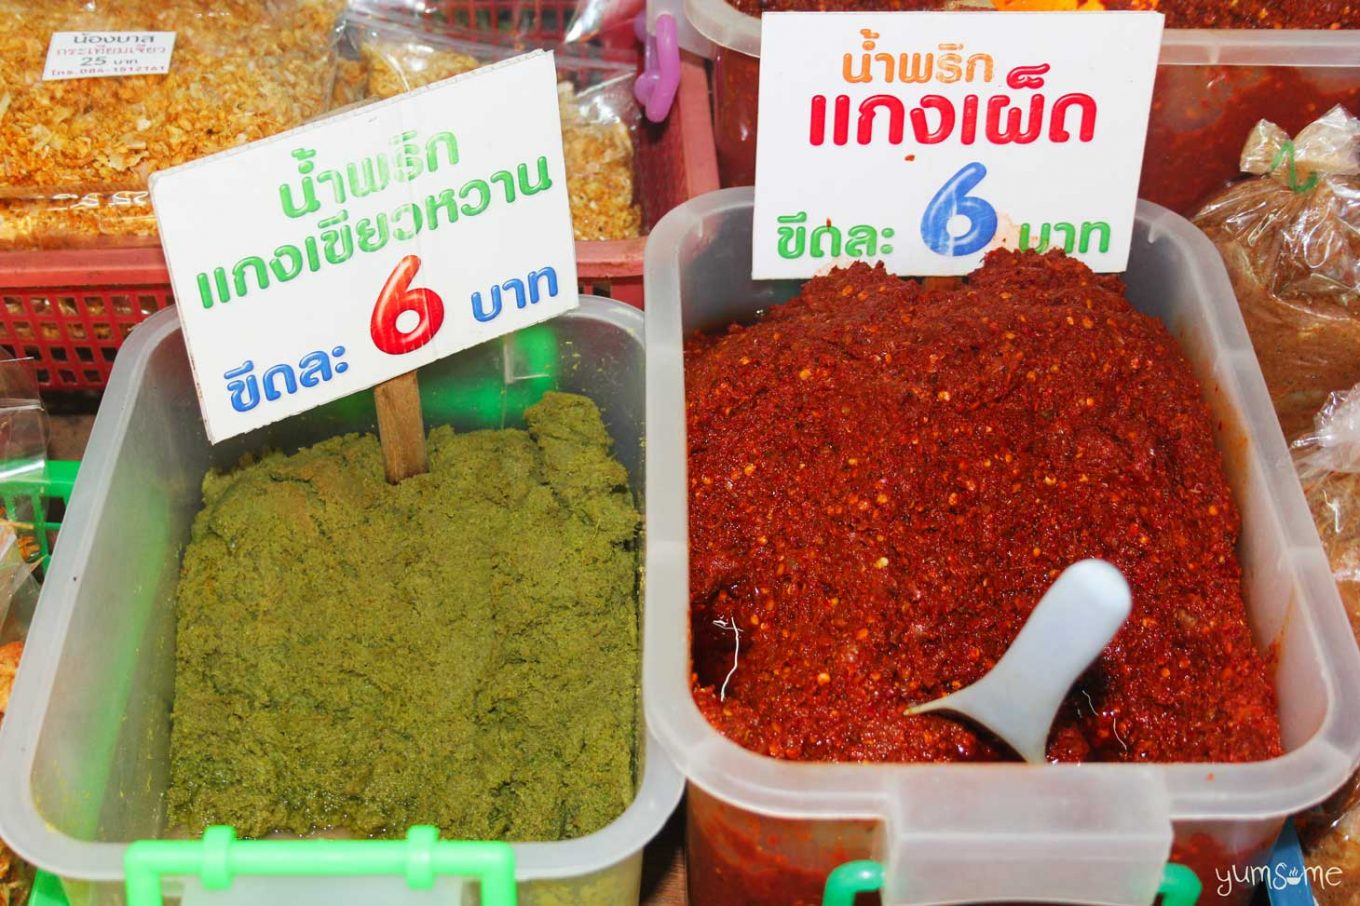 Red and green curry pastes for sale at Kad Ton Payom, Chiang Mai. | yumsome.com